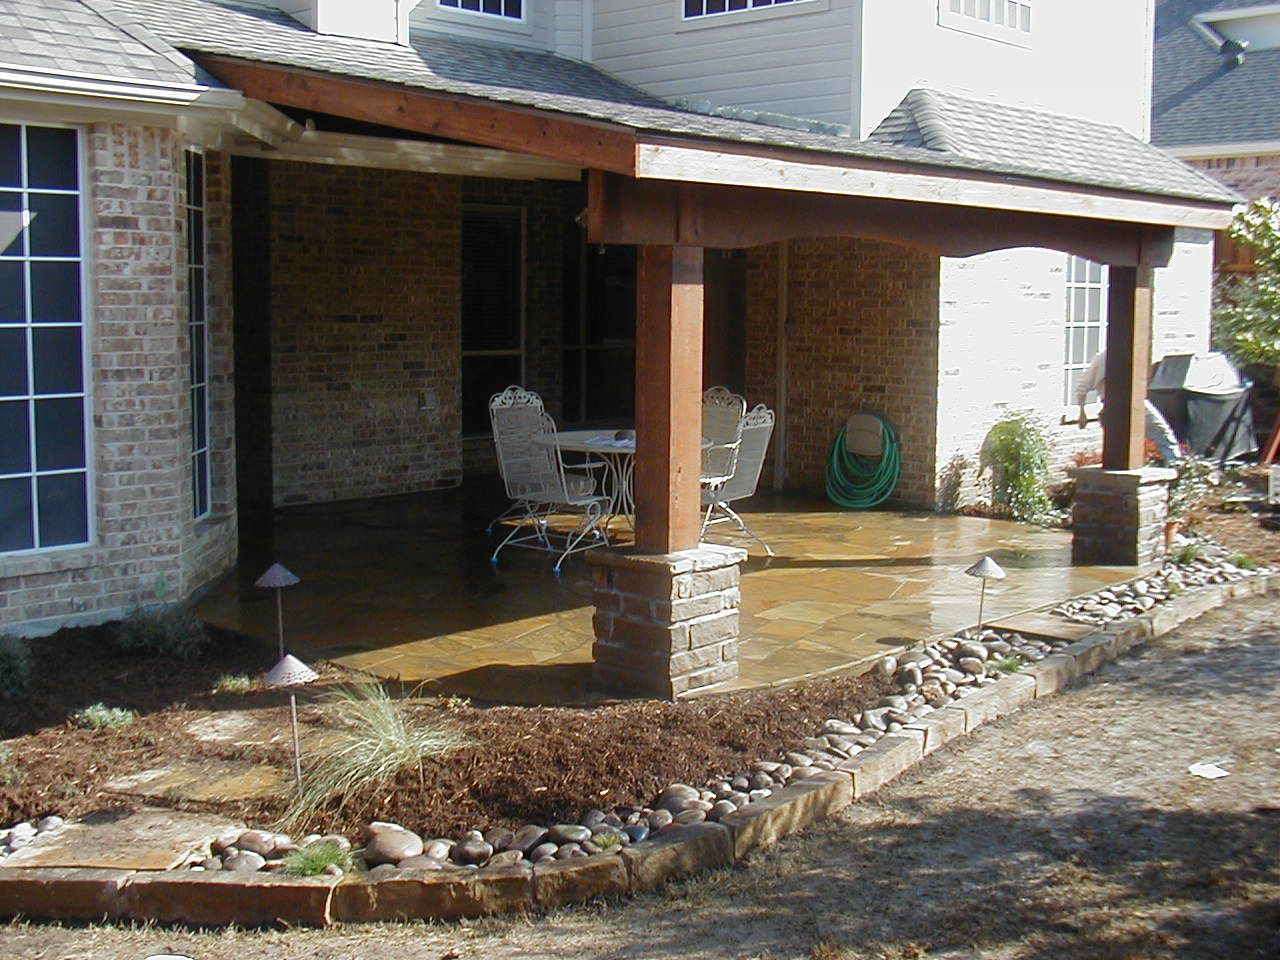 Covered Attached Patio Plans. Stained concrete. - Covered Attached Patio Plans. Stained Concrete. Garden, Yard